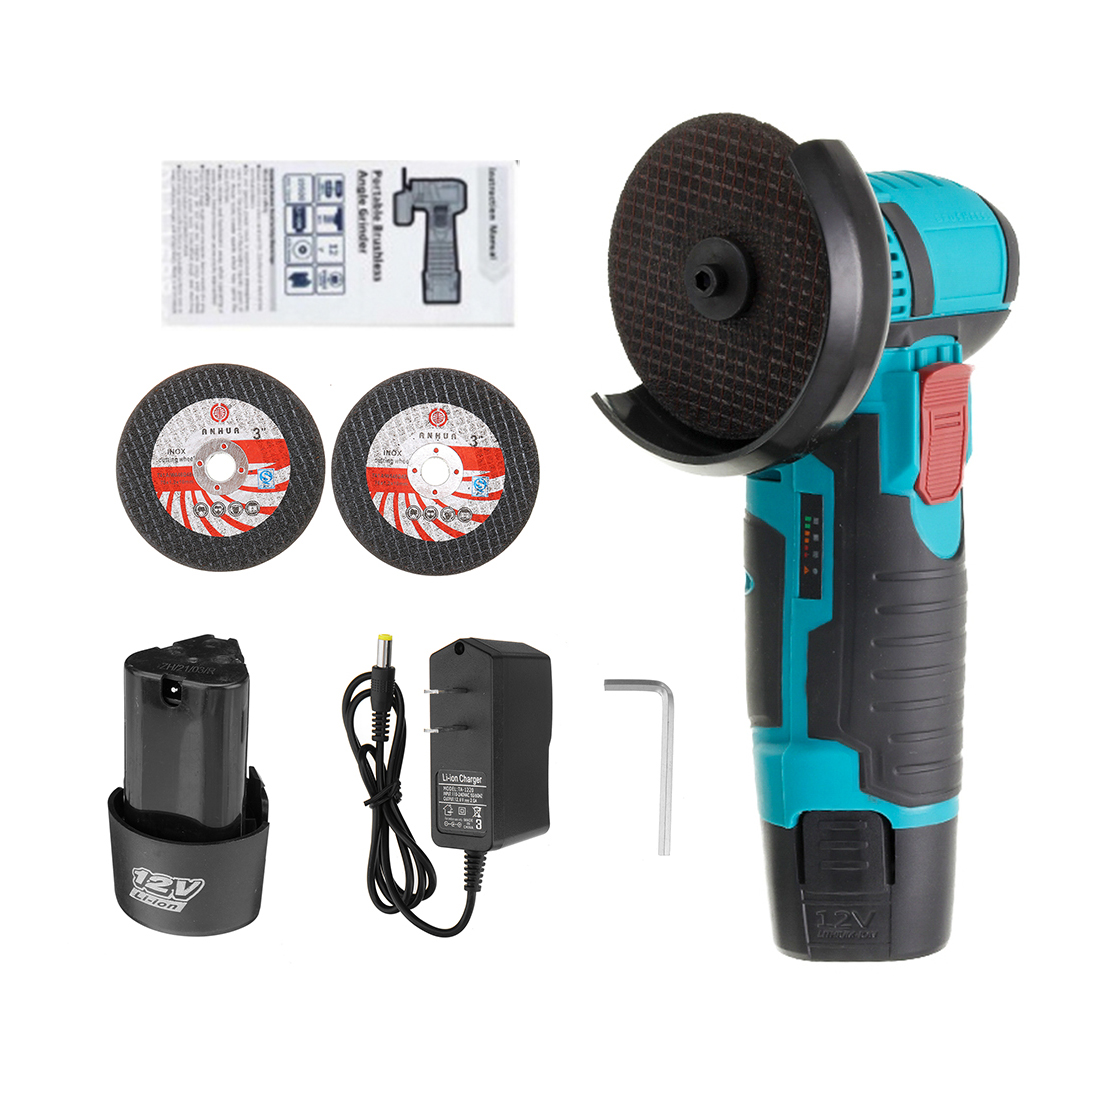 12V Brushless Angle Grinder Mini Cordless Electric Angle Grinder for Metal Wood W/ 1/2Pcs Battery